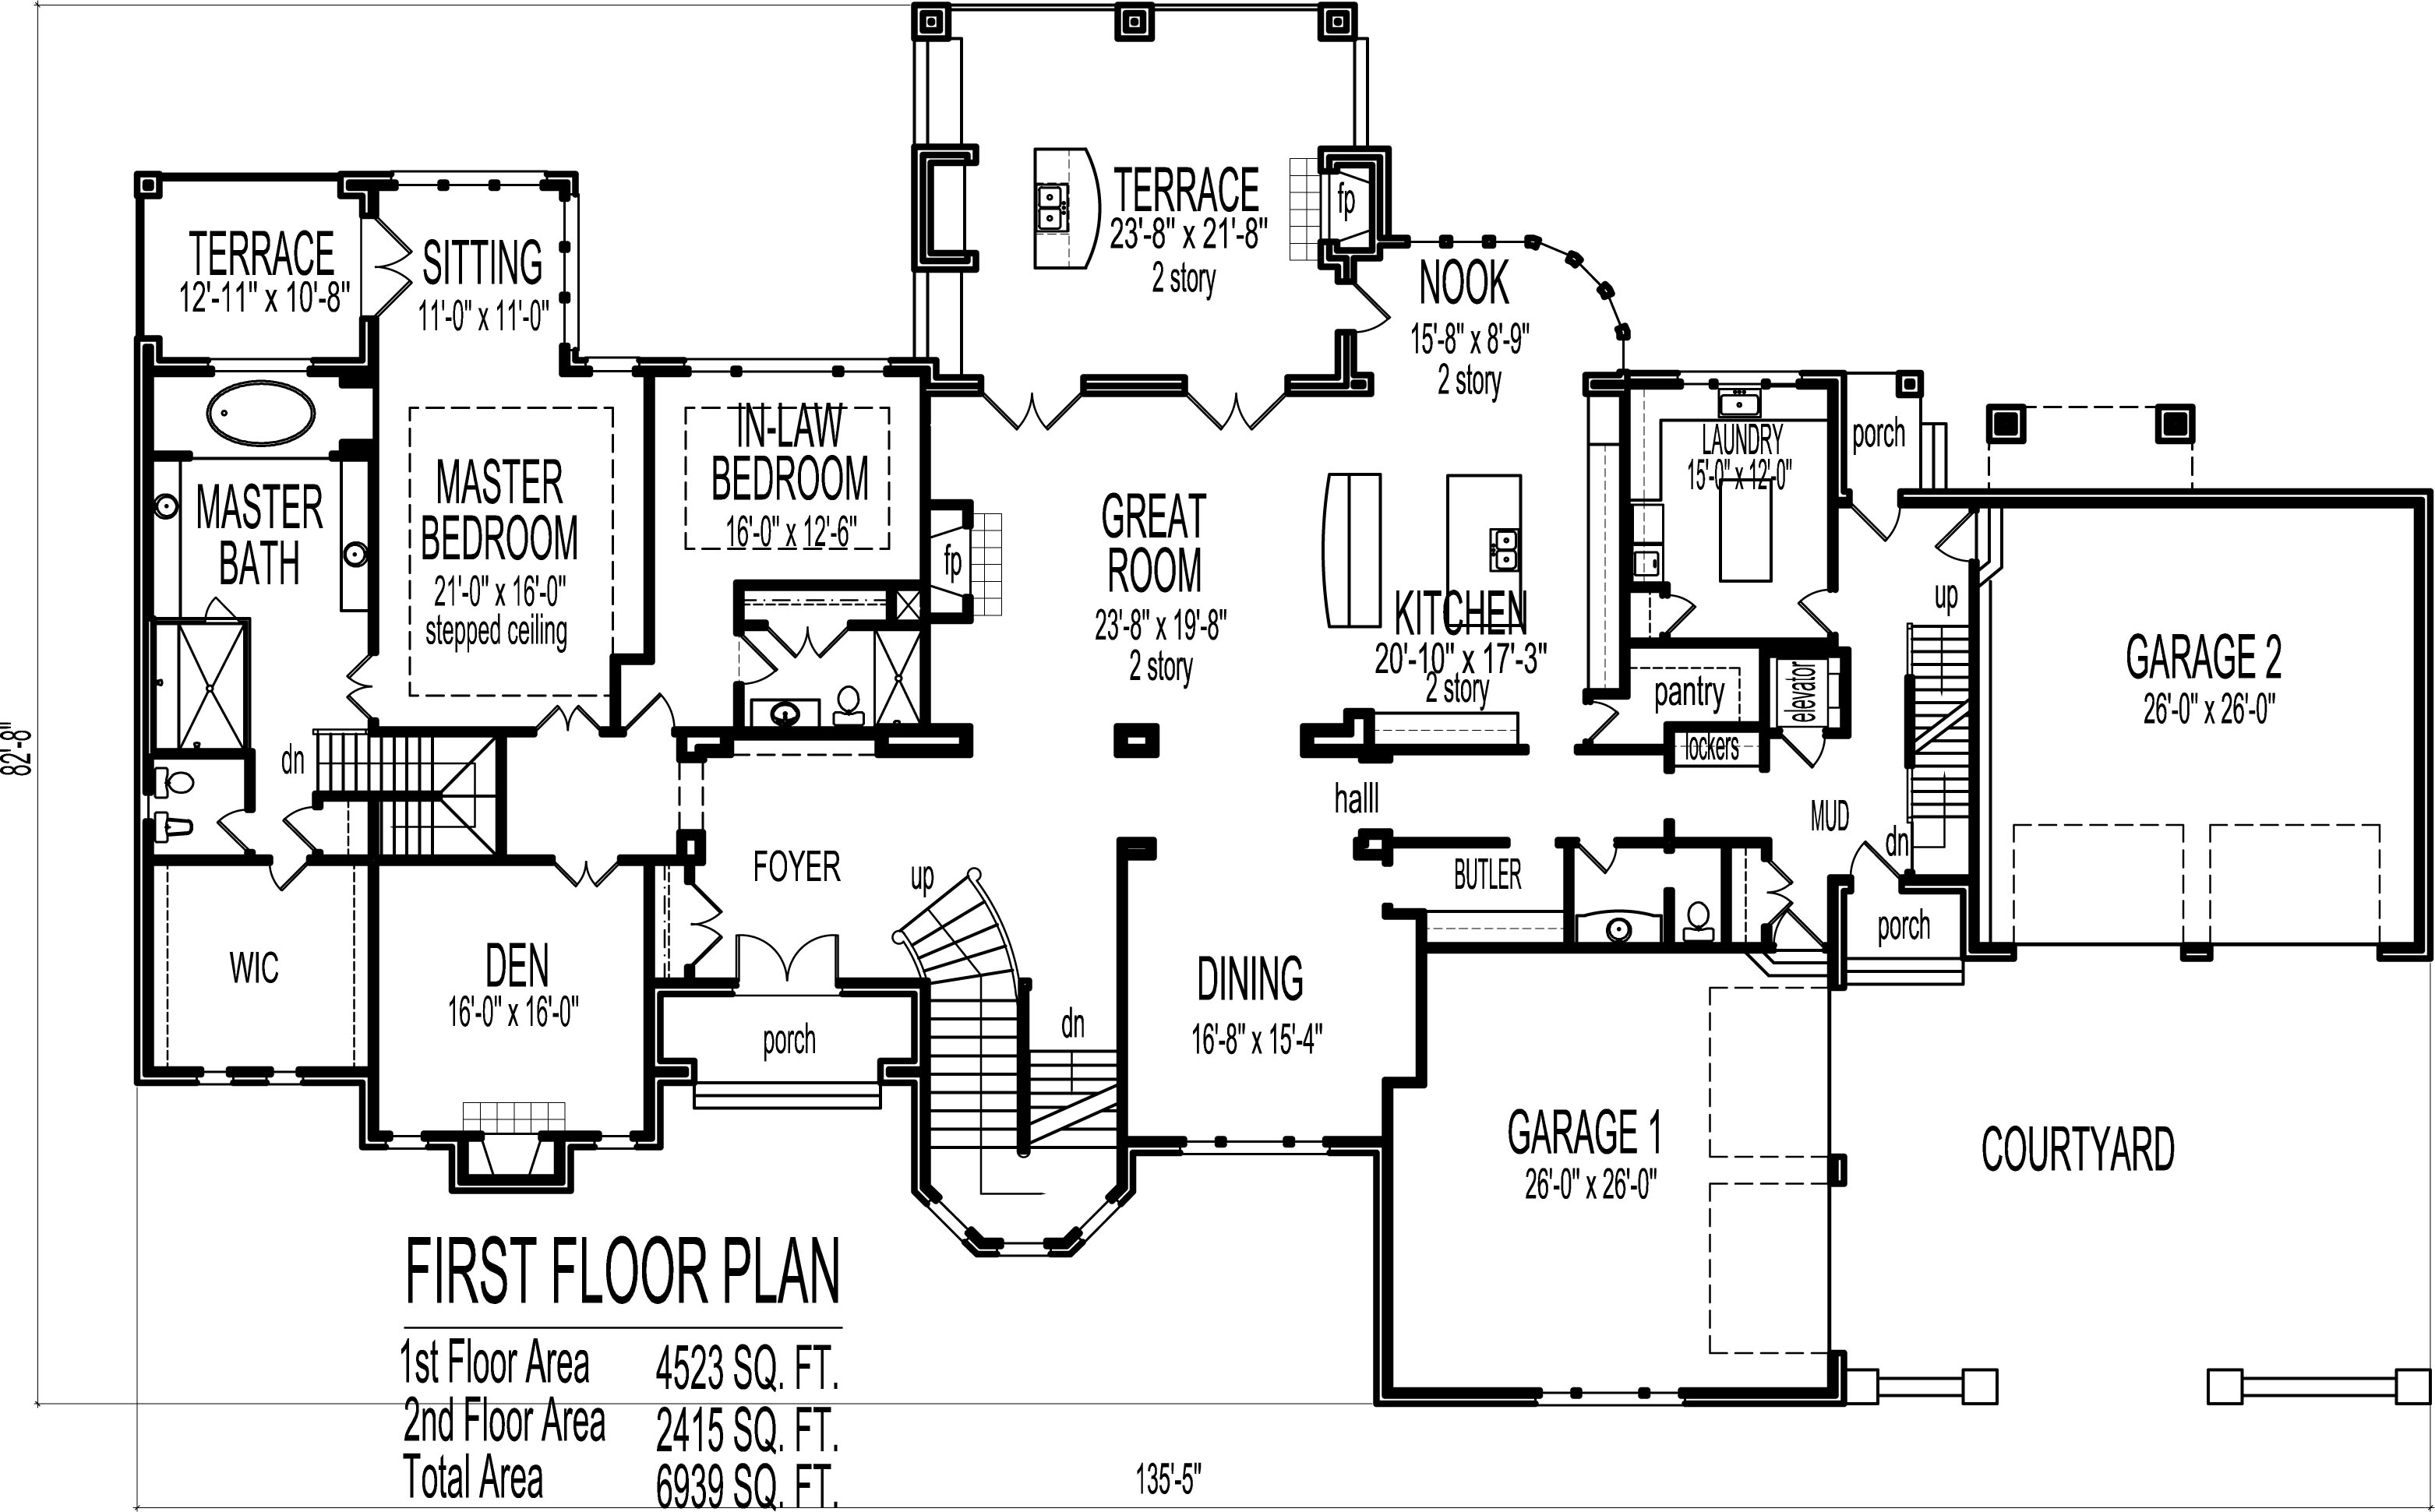 Dream house floor plans blueprints 2 story 5 bedroom large for 5 bedroom floor plans